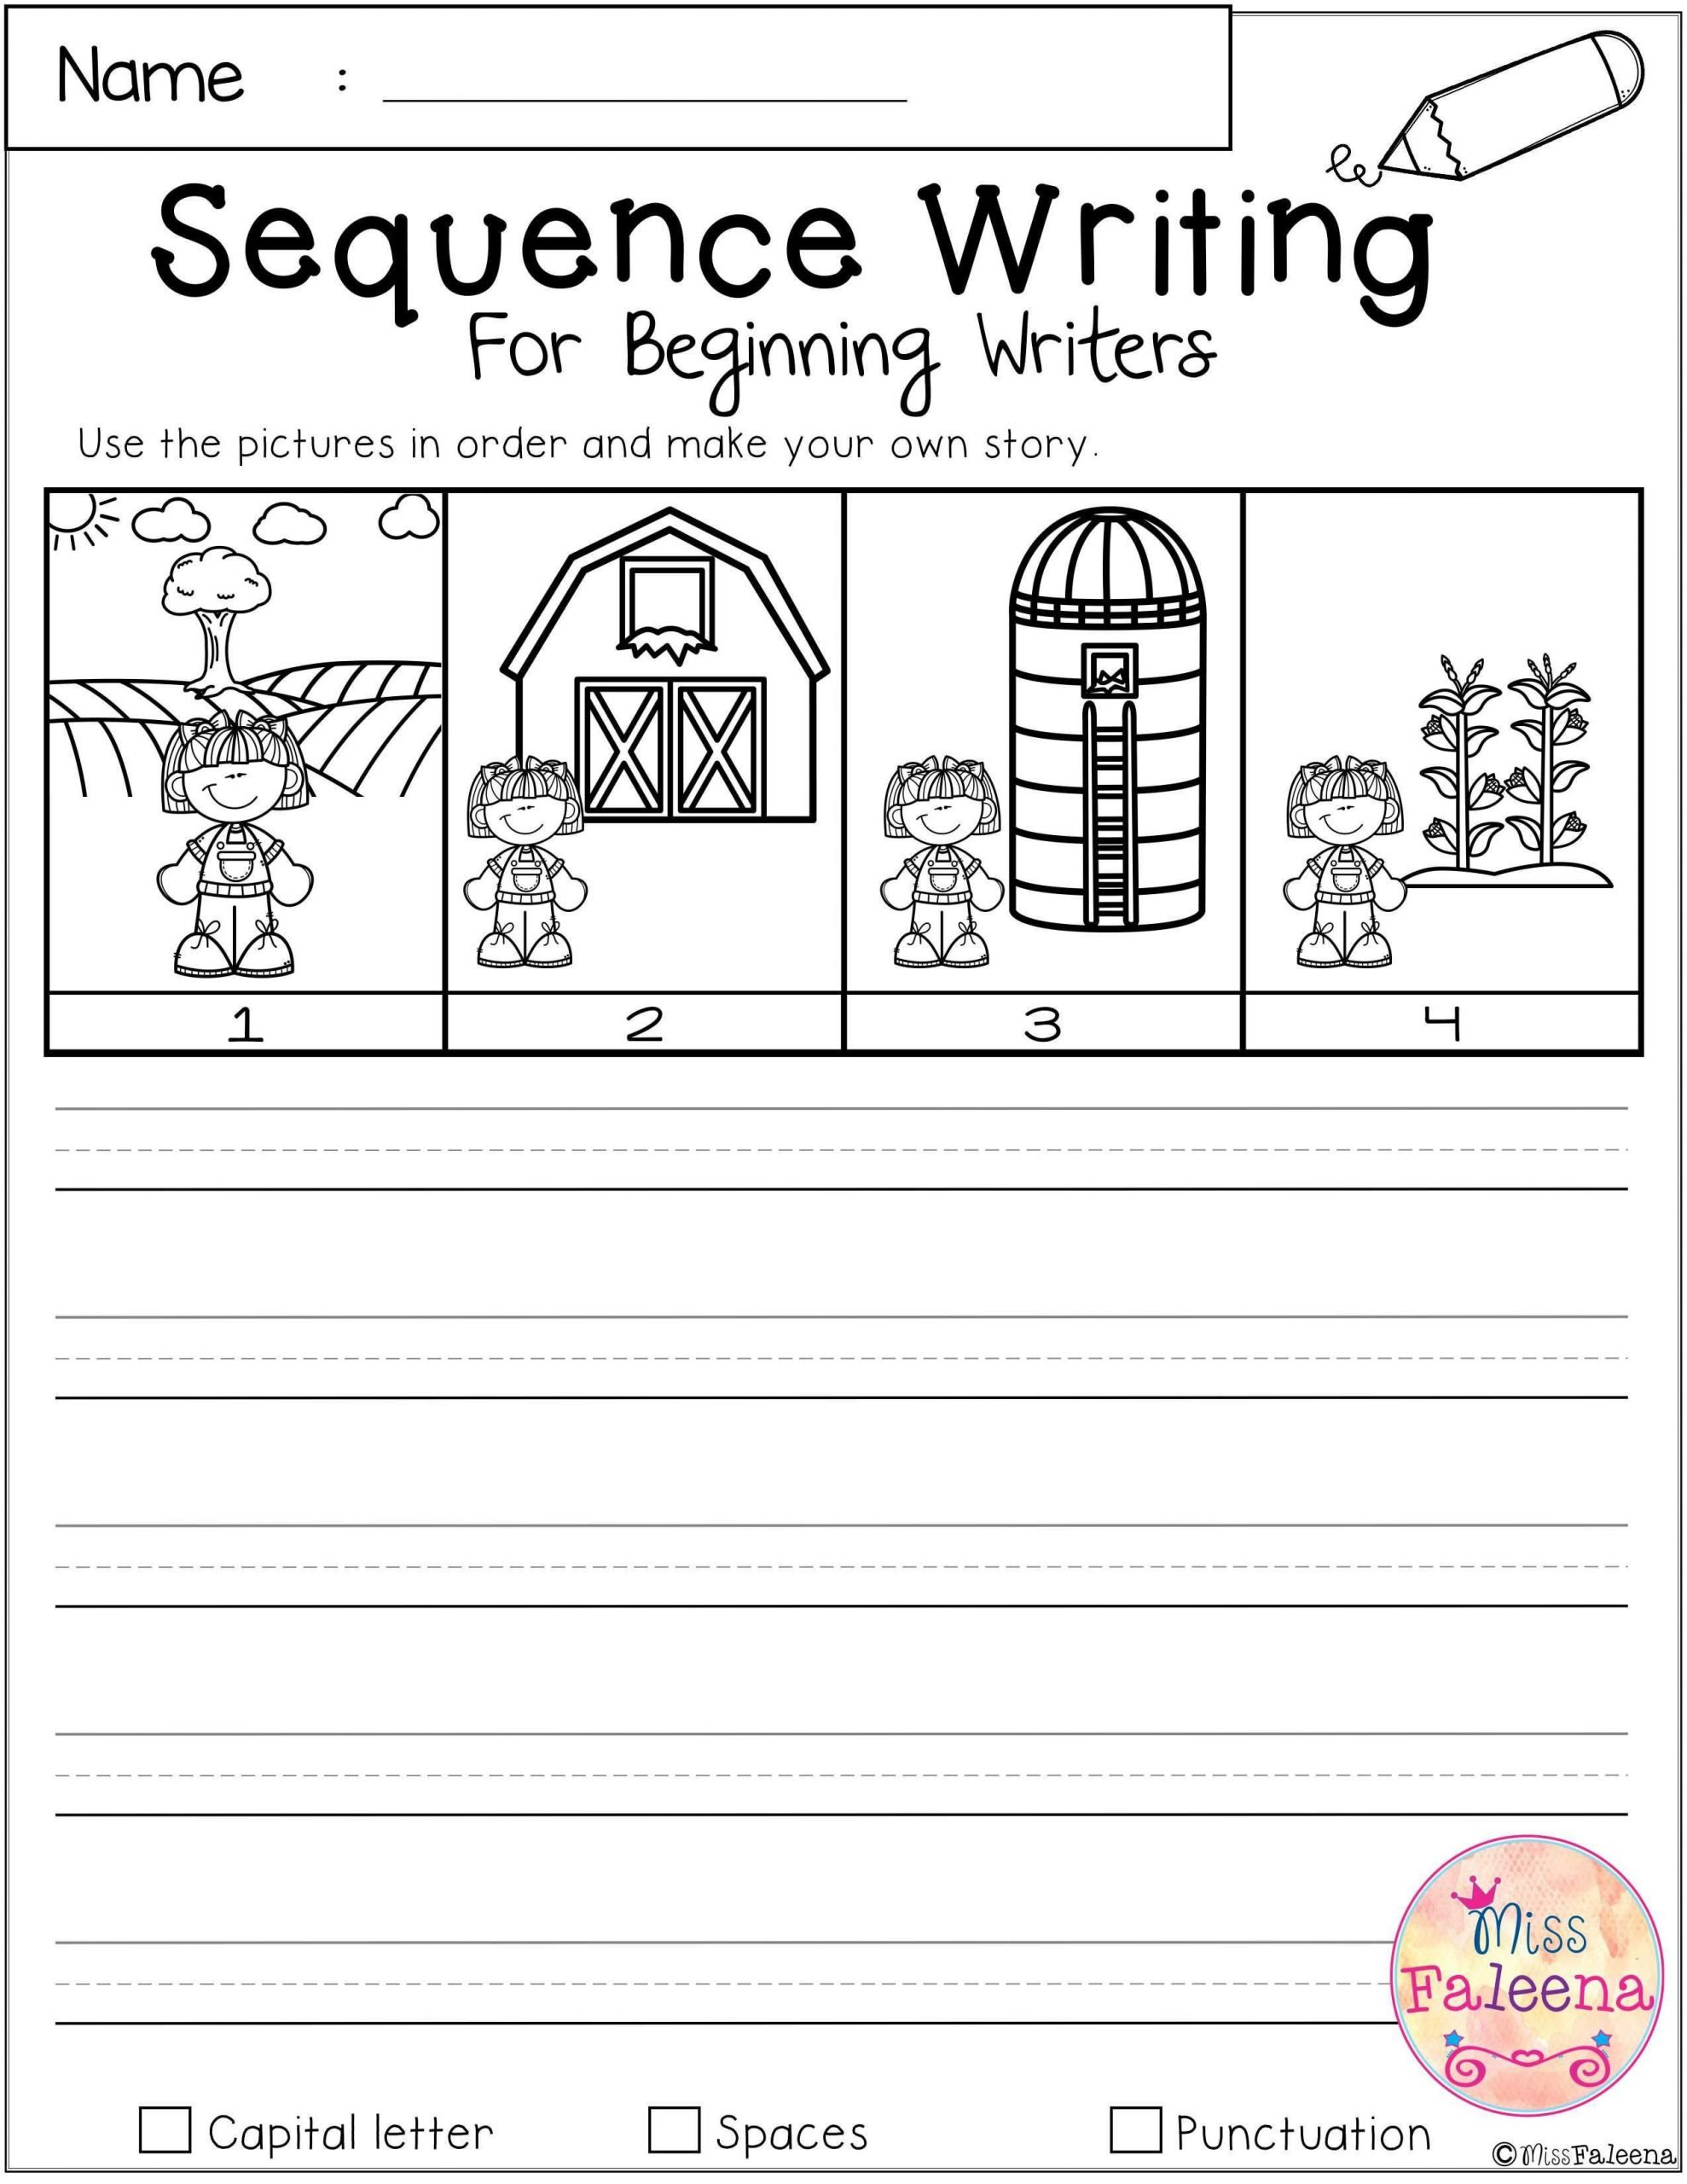 Sequence Worksheets for Kids Free Sequence Writing for Beginning Writers